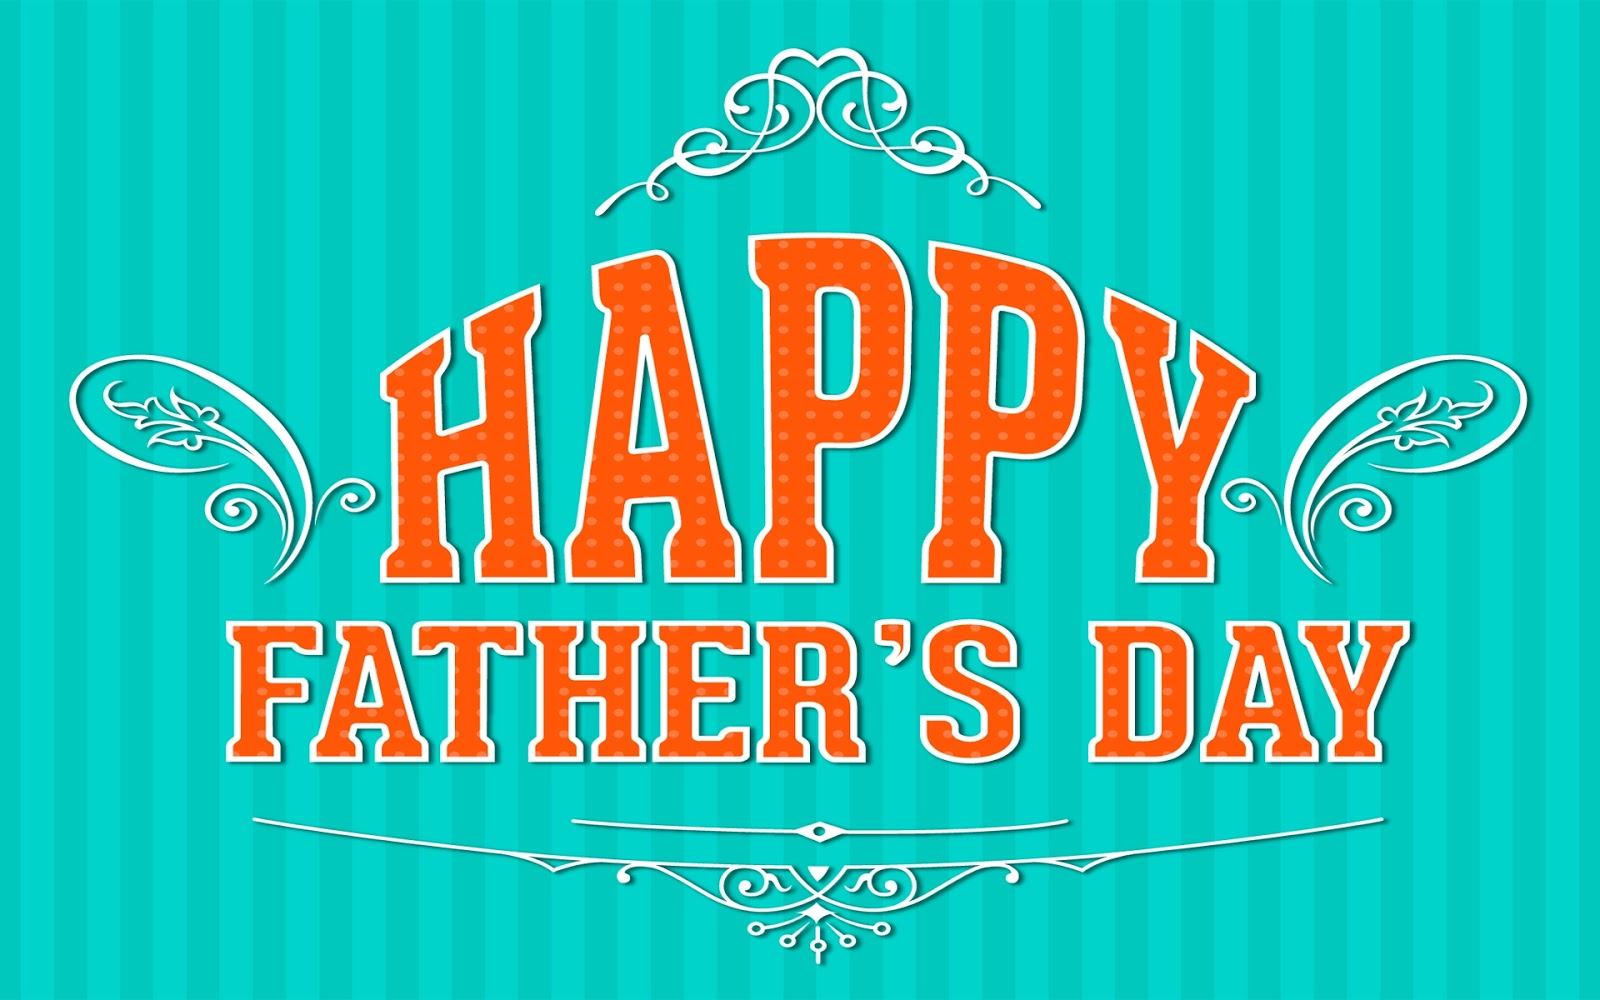 Fathers Day Quotes Fathers Day Quotes Father's Day Inspirational Quotes